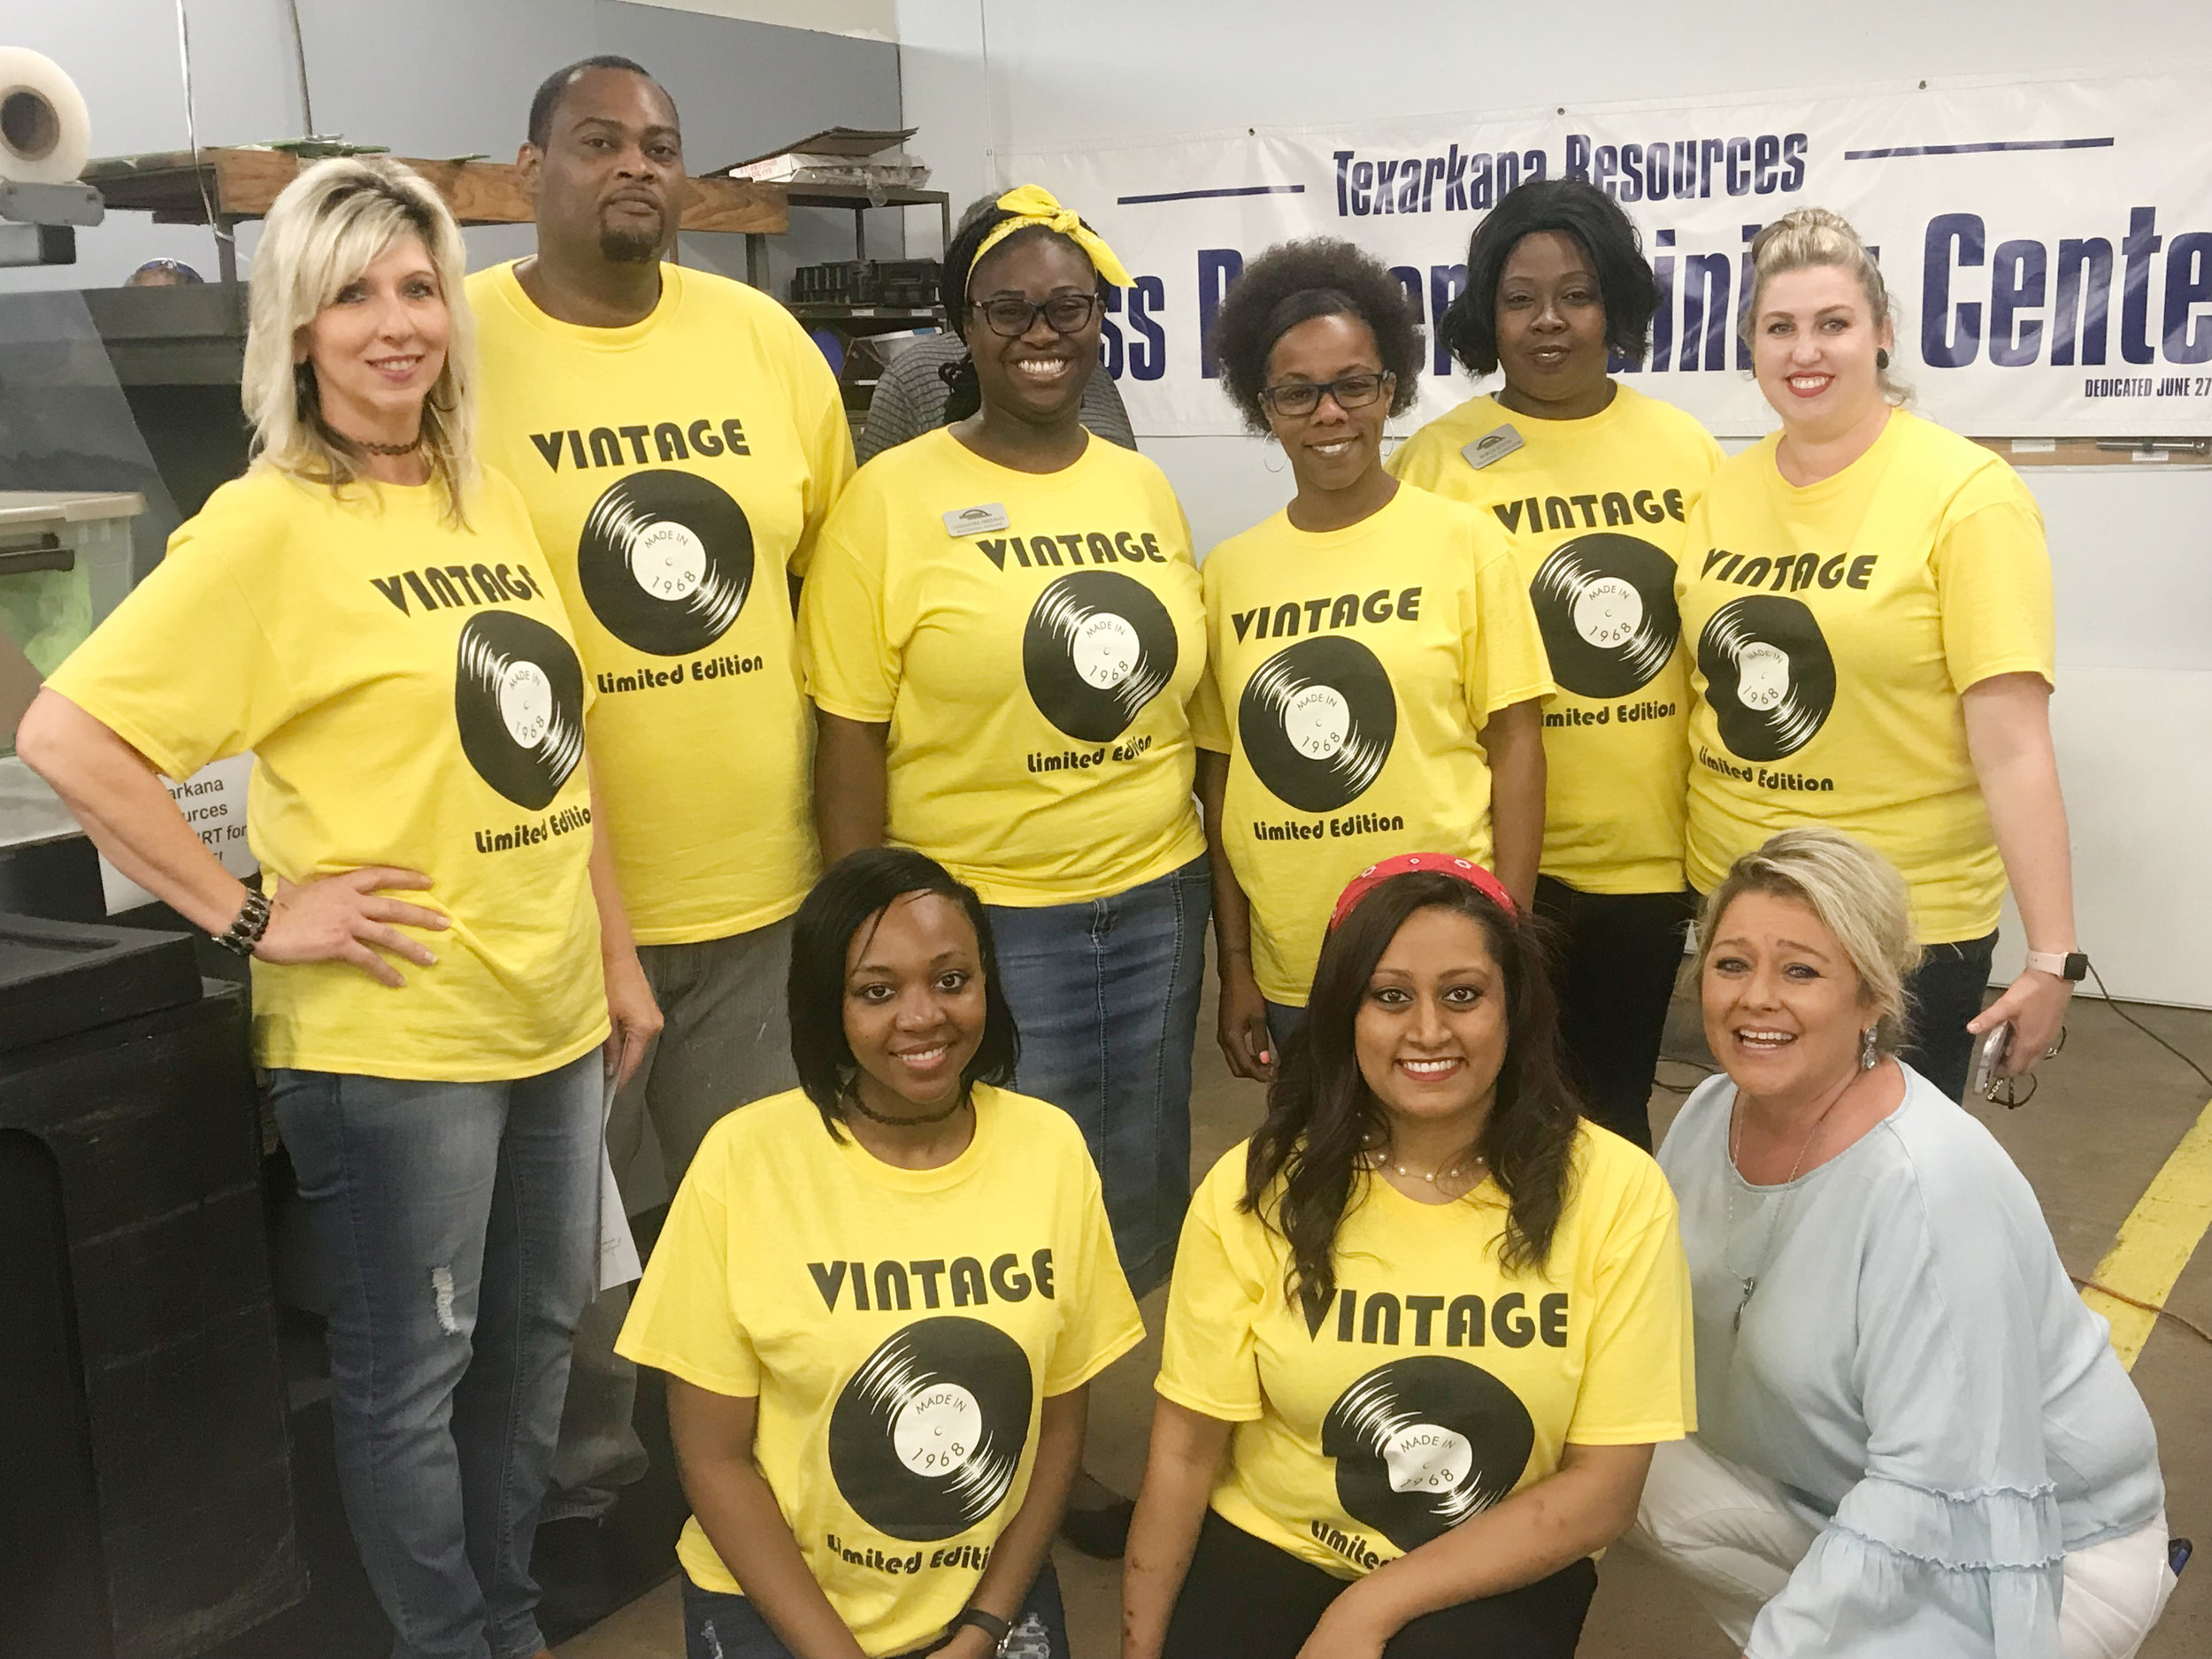 (front row) Brooke Rooters, Jayna Hazelwood and Shannon West; (back row) Erica Chapman, Charles Cooper, Cassandra Freeman, Ann Hobbs, Marcia Austin and Jennifer Lewis